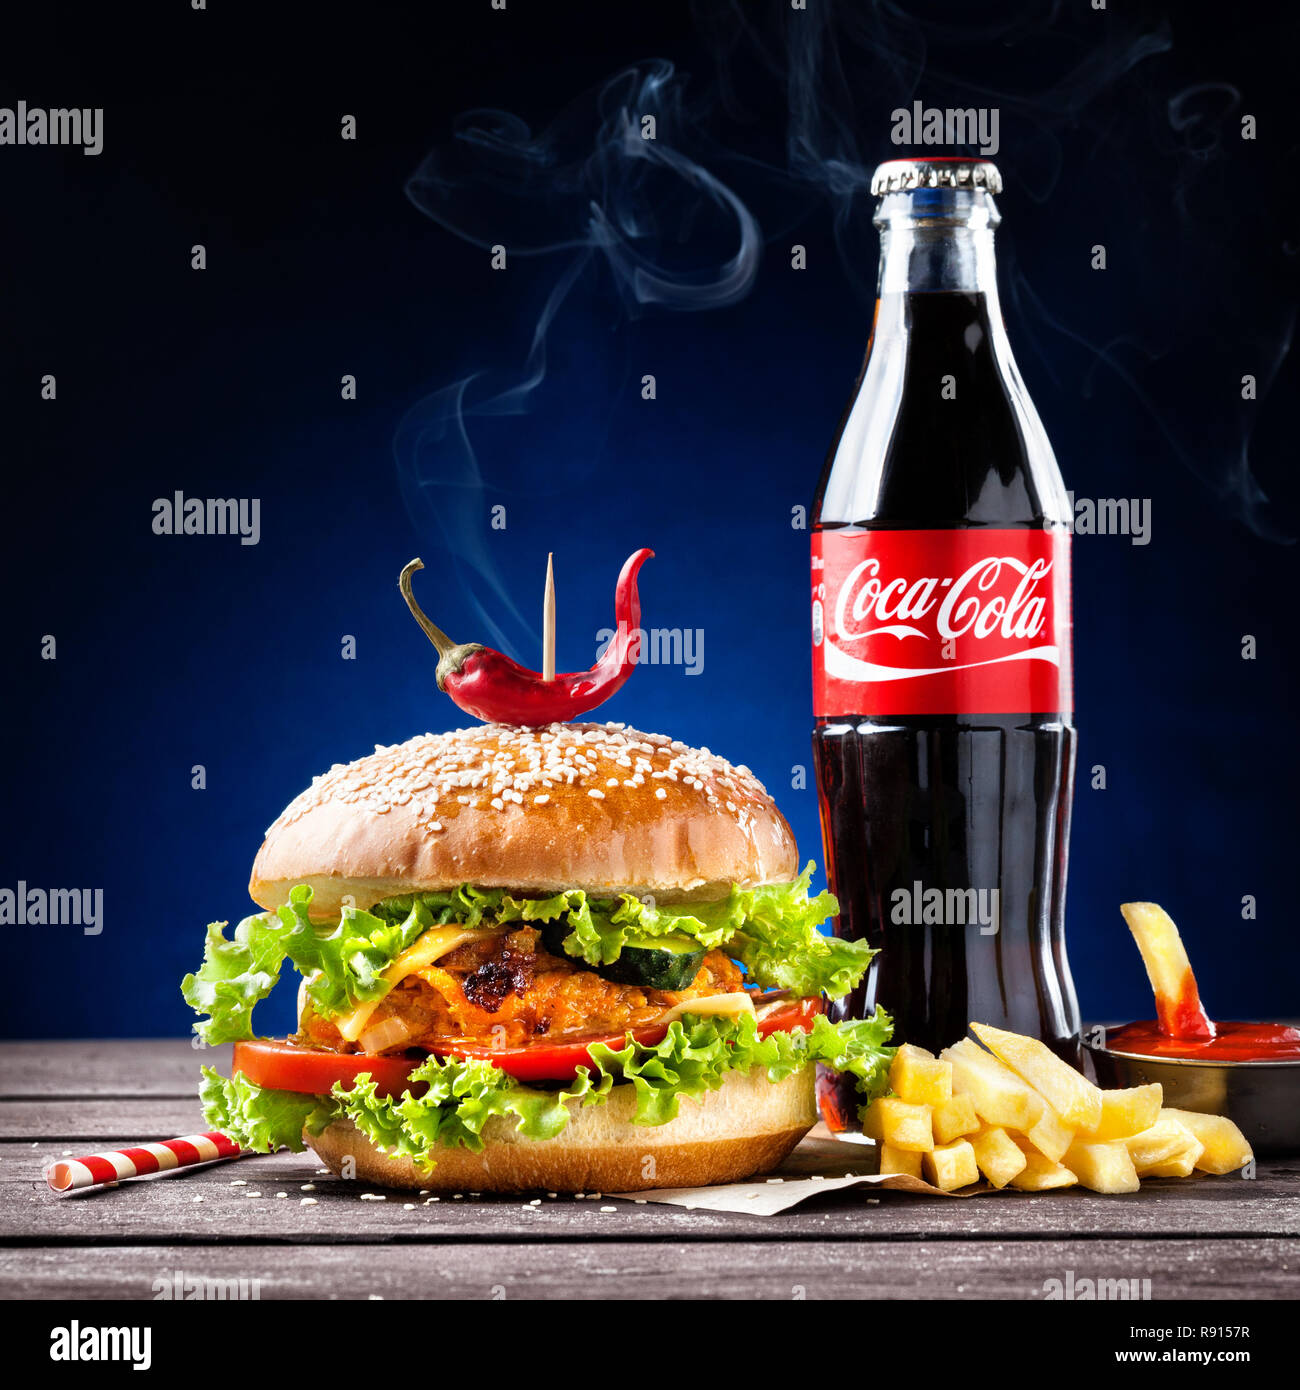 MUMBAI, INDIA – MAY 23, 2015: Veggie burger, French fries and Coca-Cola bottle - is the most popular carbonated soft drink beverages sold around the w - Stock Image